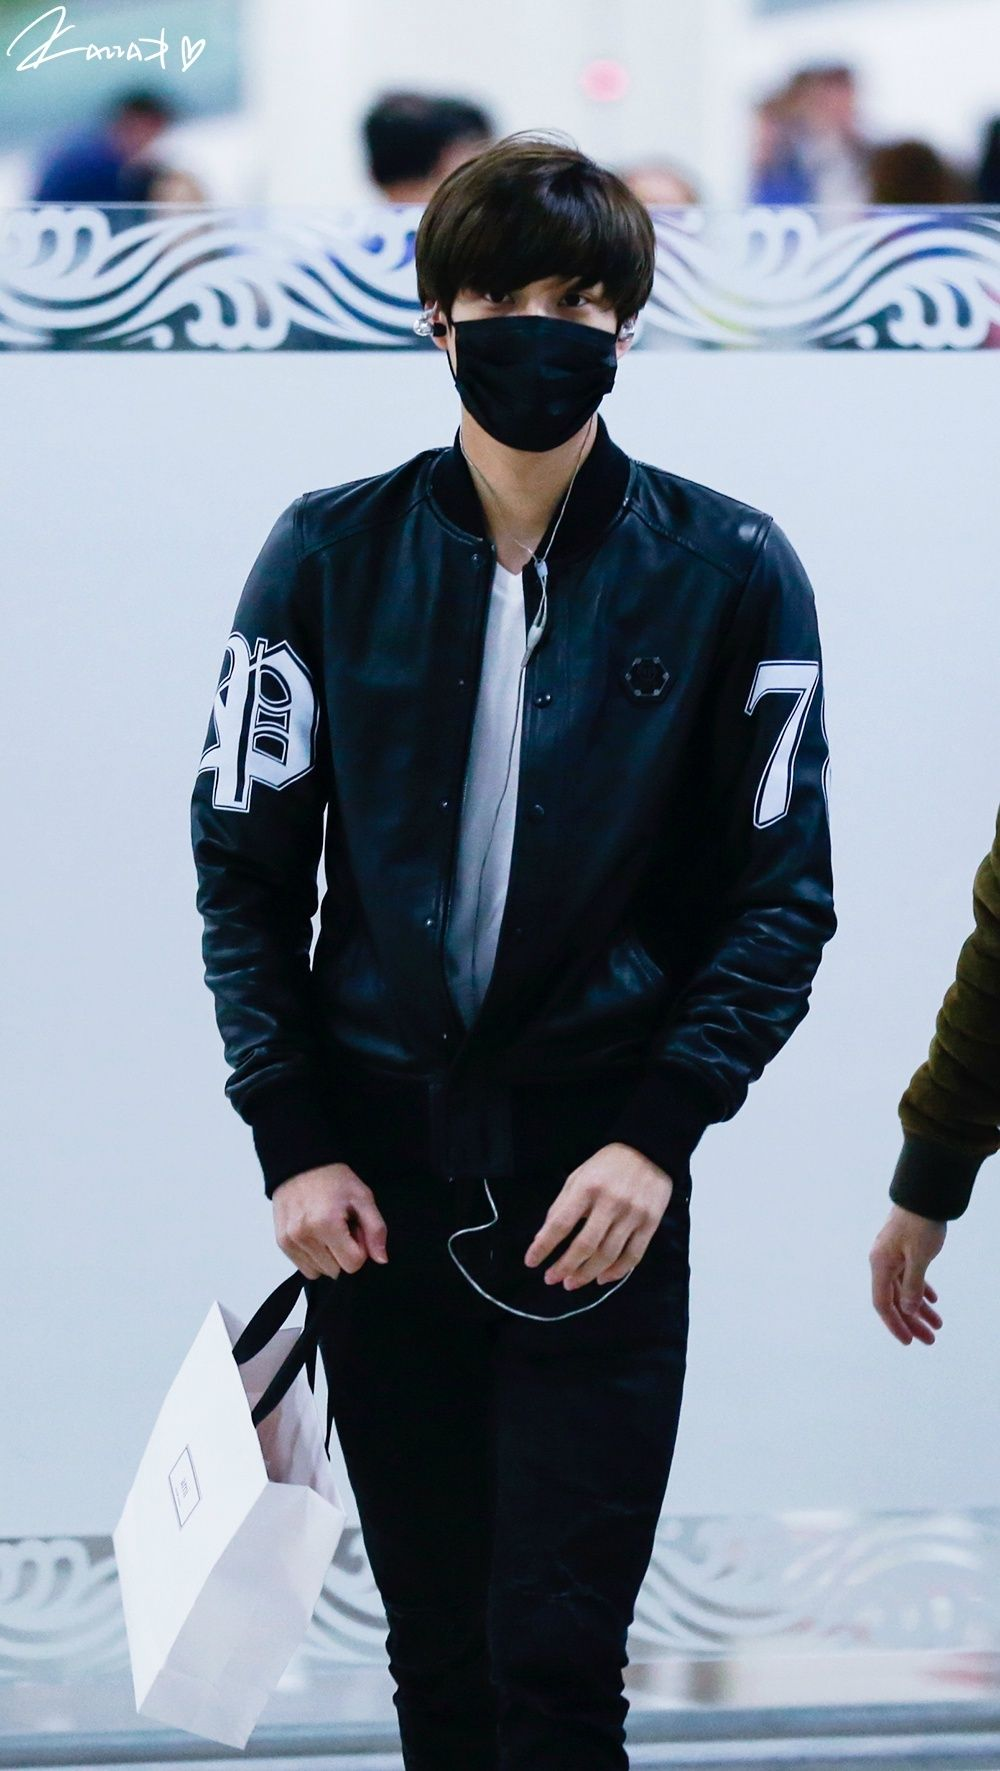 Kai Really You Must Know Masks Drive Me Crazy Adding You To The Mix In Those Skinny Jeans Just Sky Rockets My Fangirl Levels Chen Suho Sehun